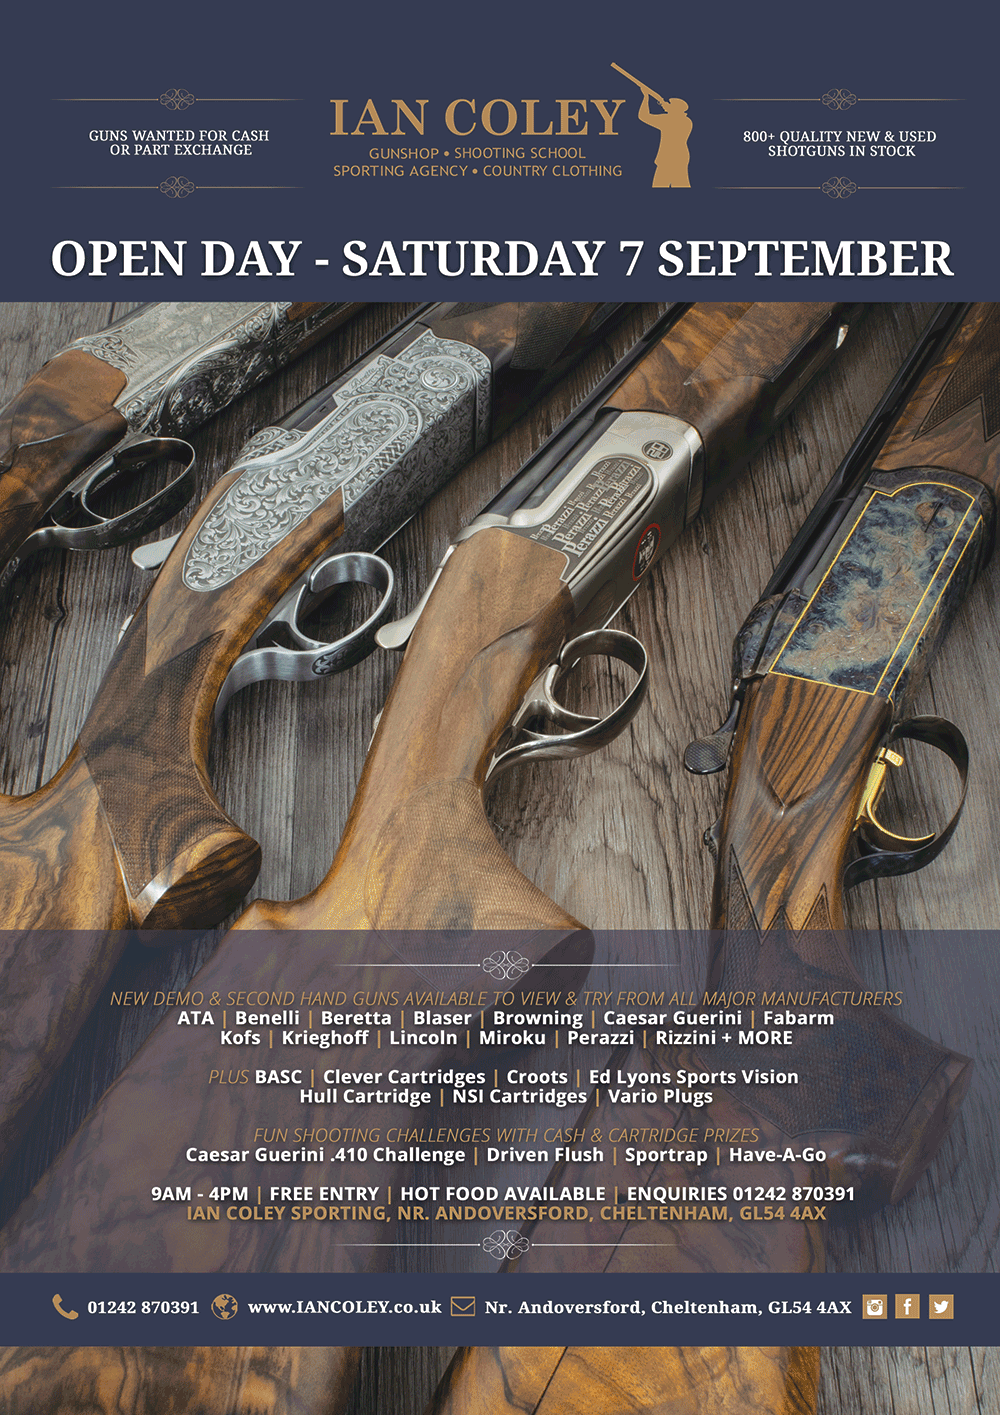 OPEN DAY – SATURDAY 7 SEPTEMBER